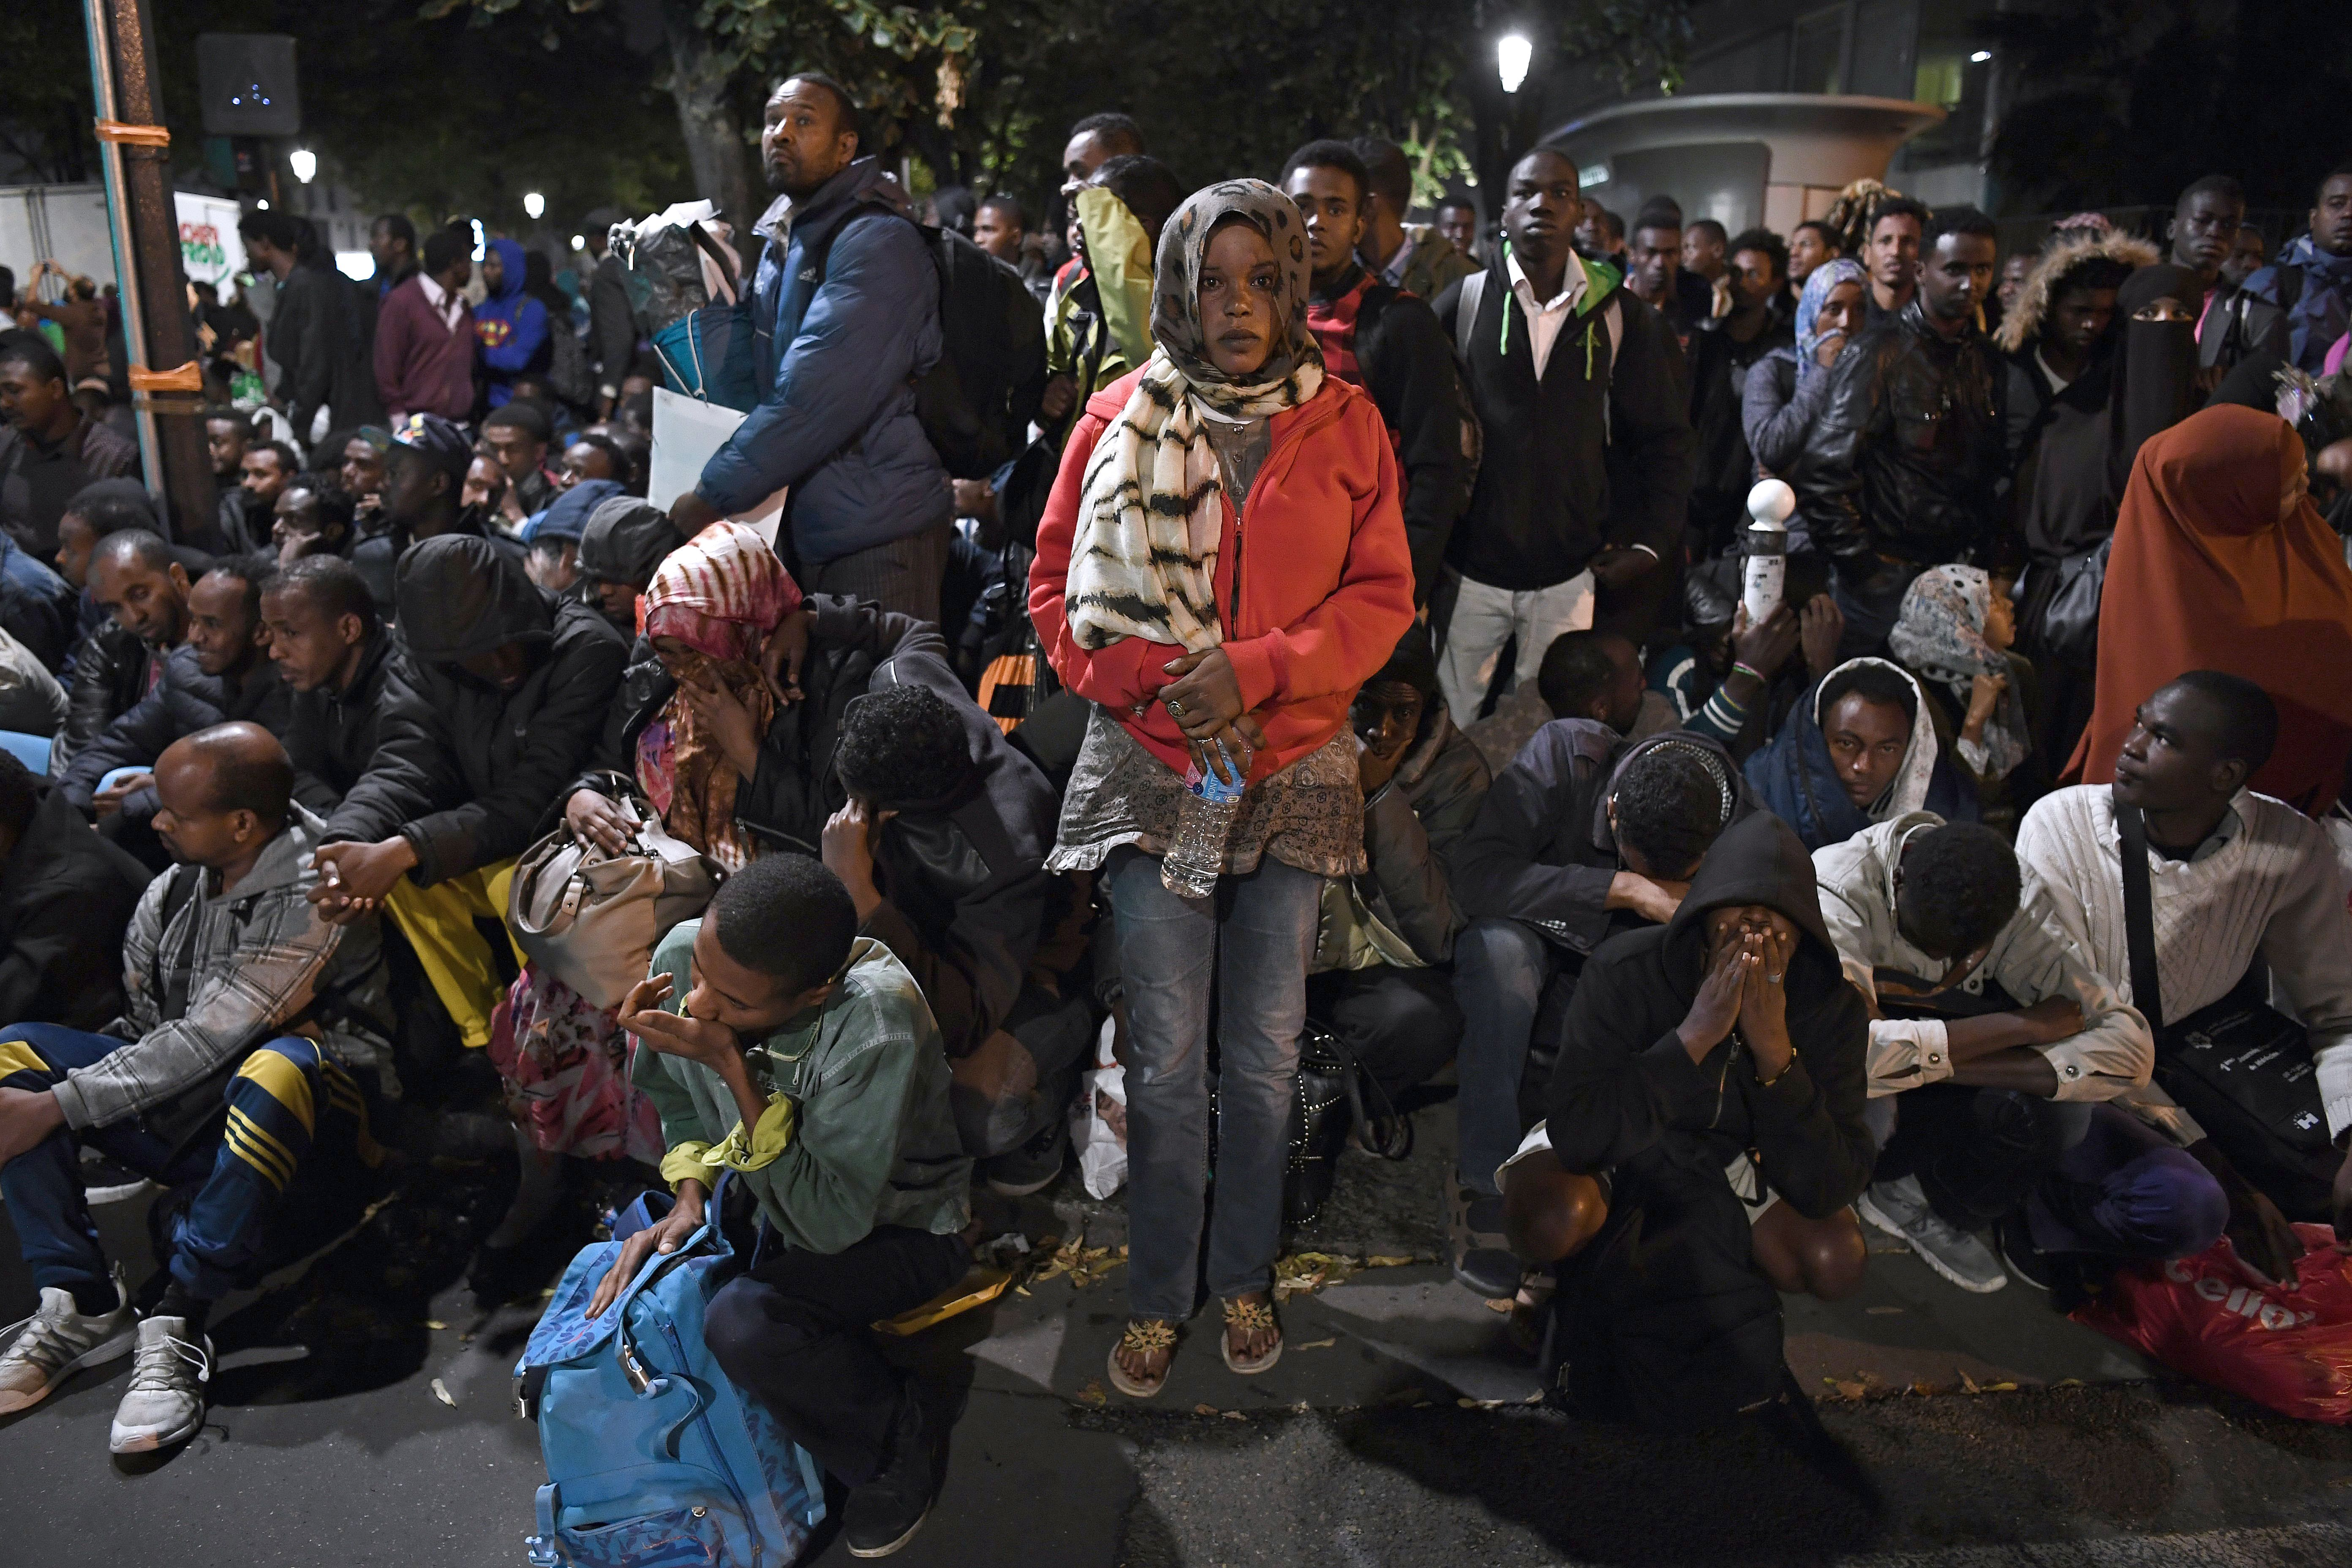 Migrants gather and wait before being evacuated from a makeshift migrant camp set up between the metro stations of Jaures and Stalingrad, in Paris on Sept. 16, 2016.